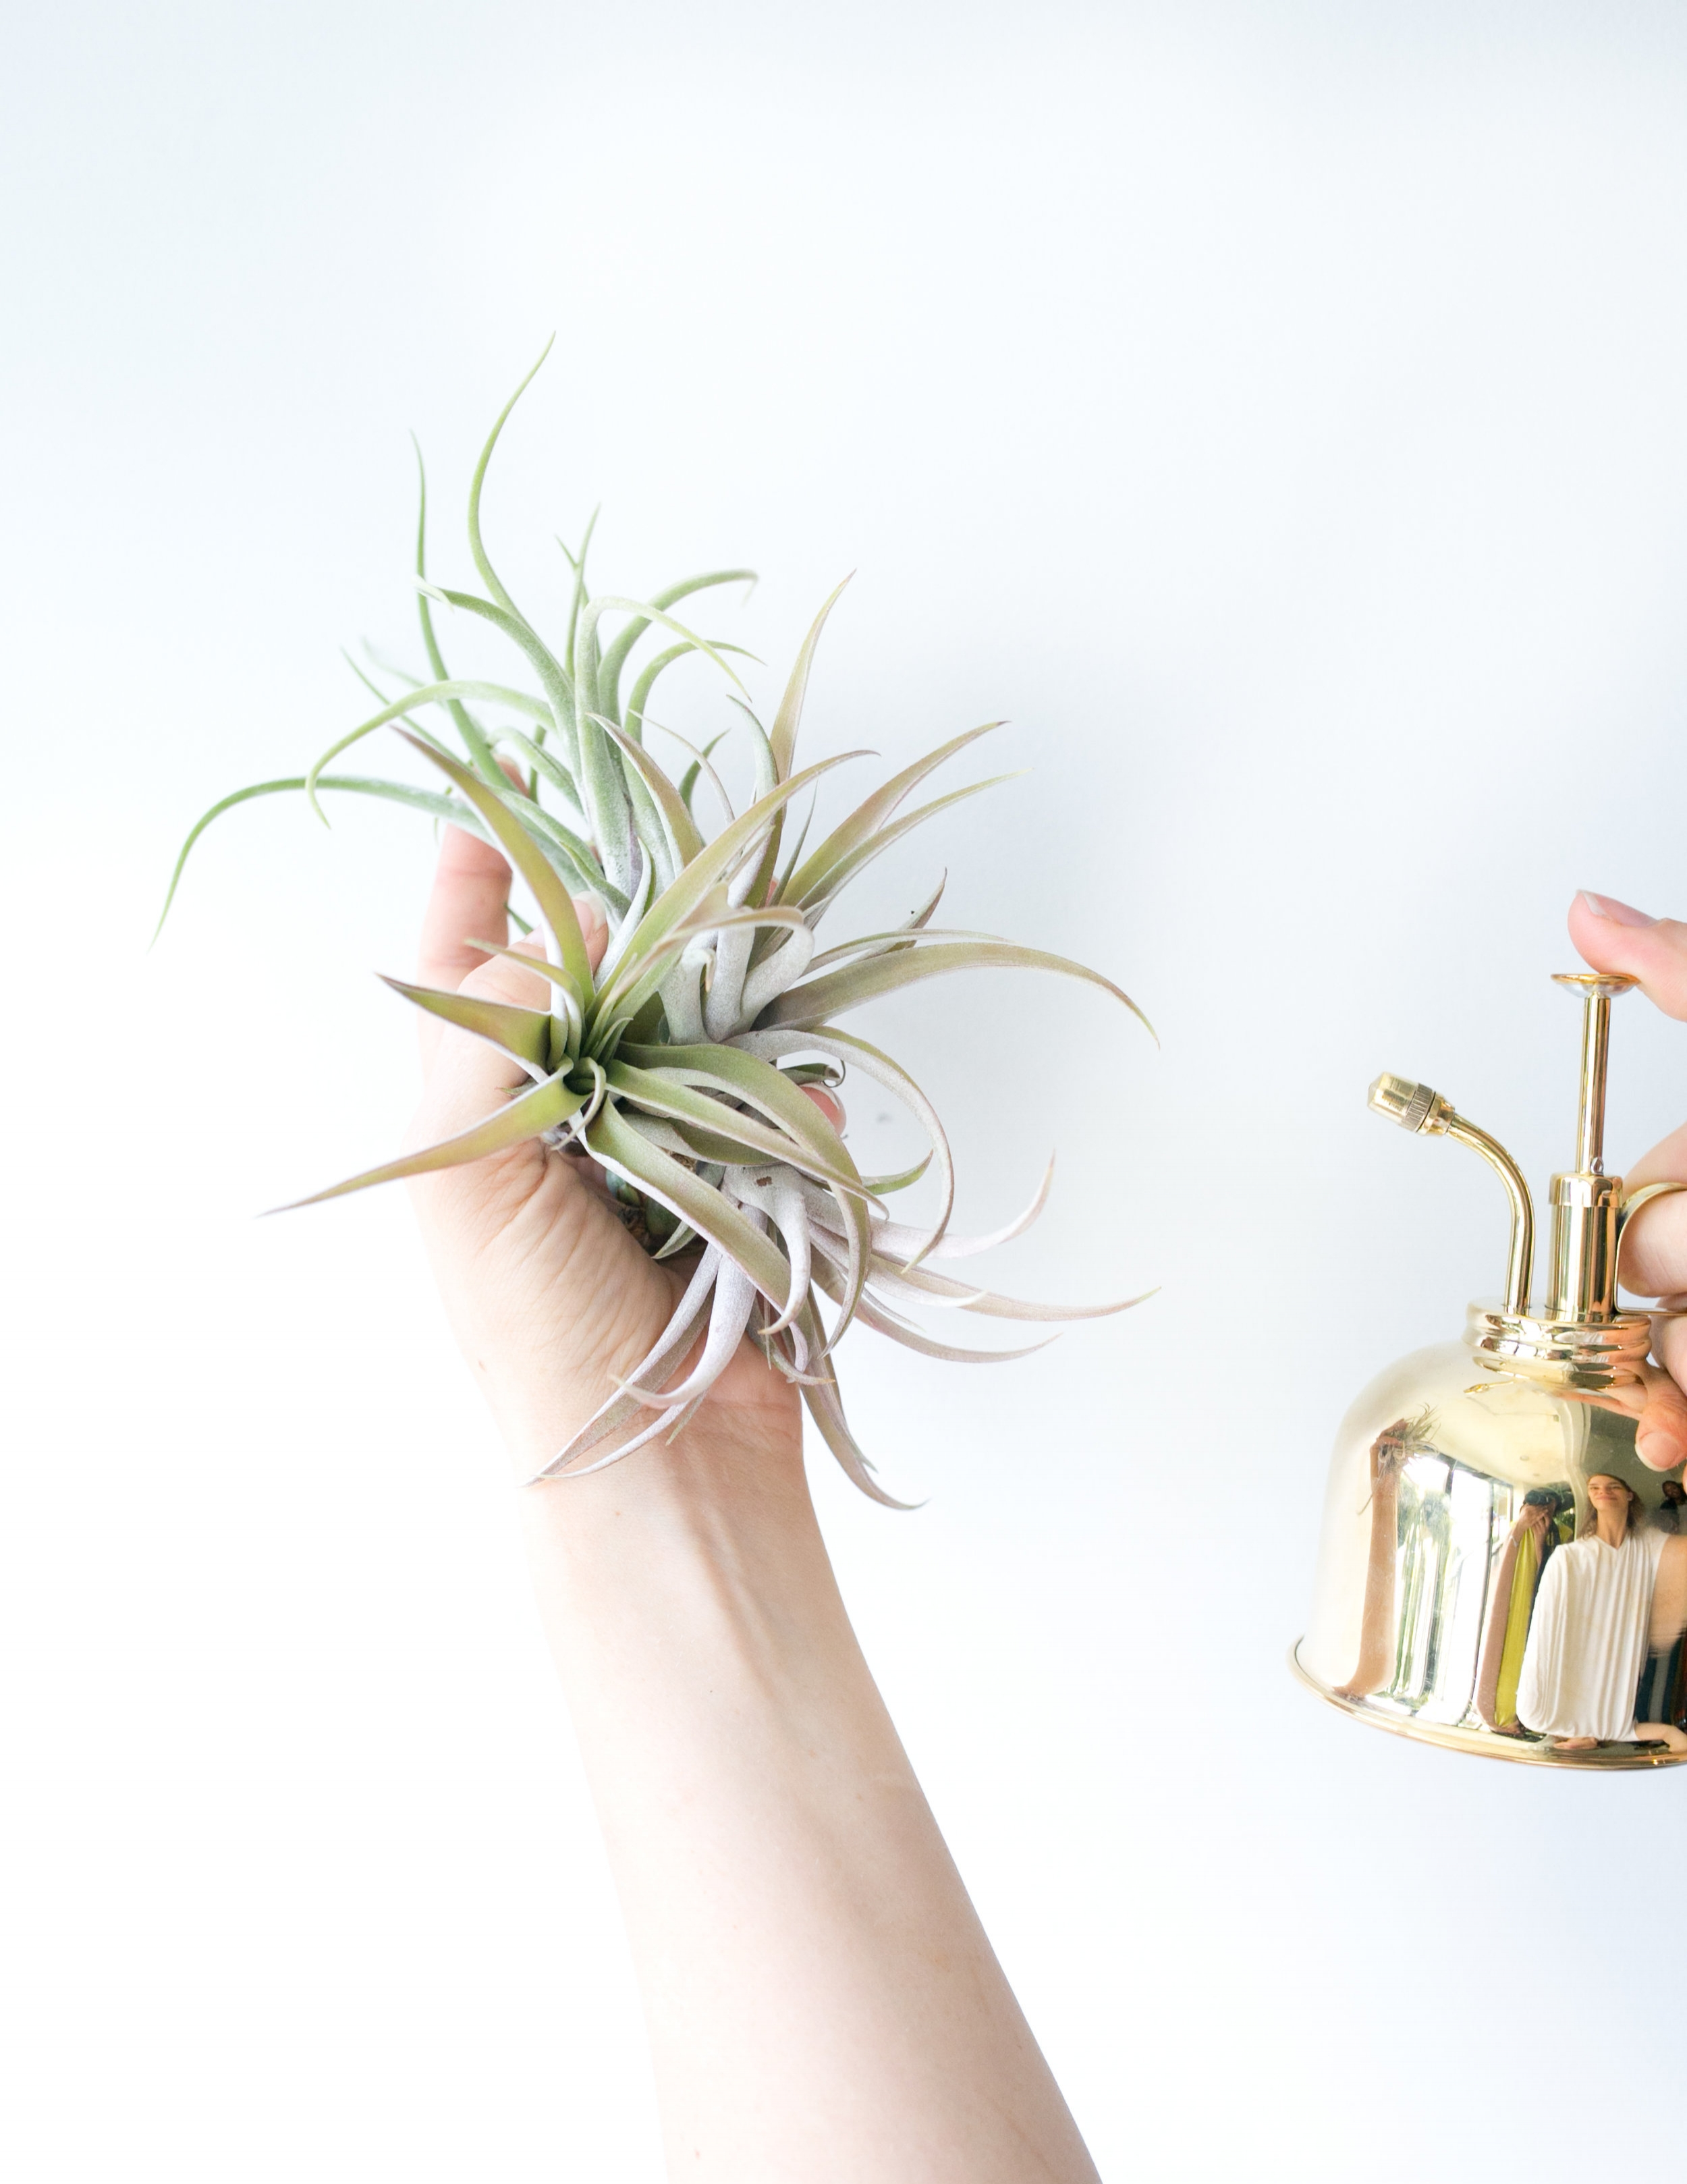 Using a mister is our favorite way to water air plants.